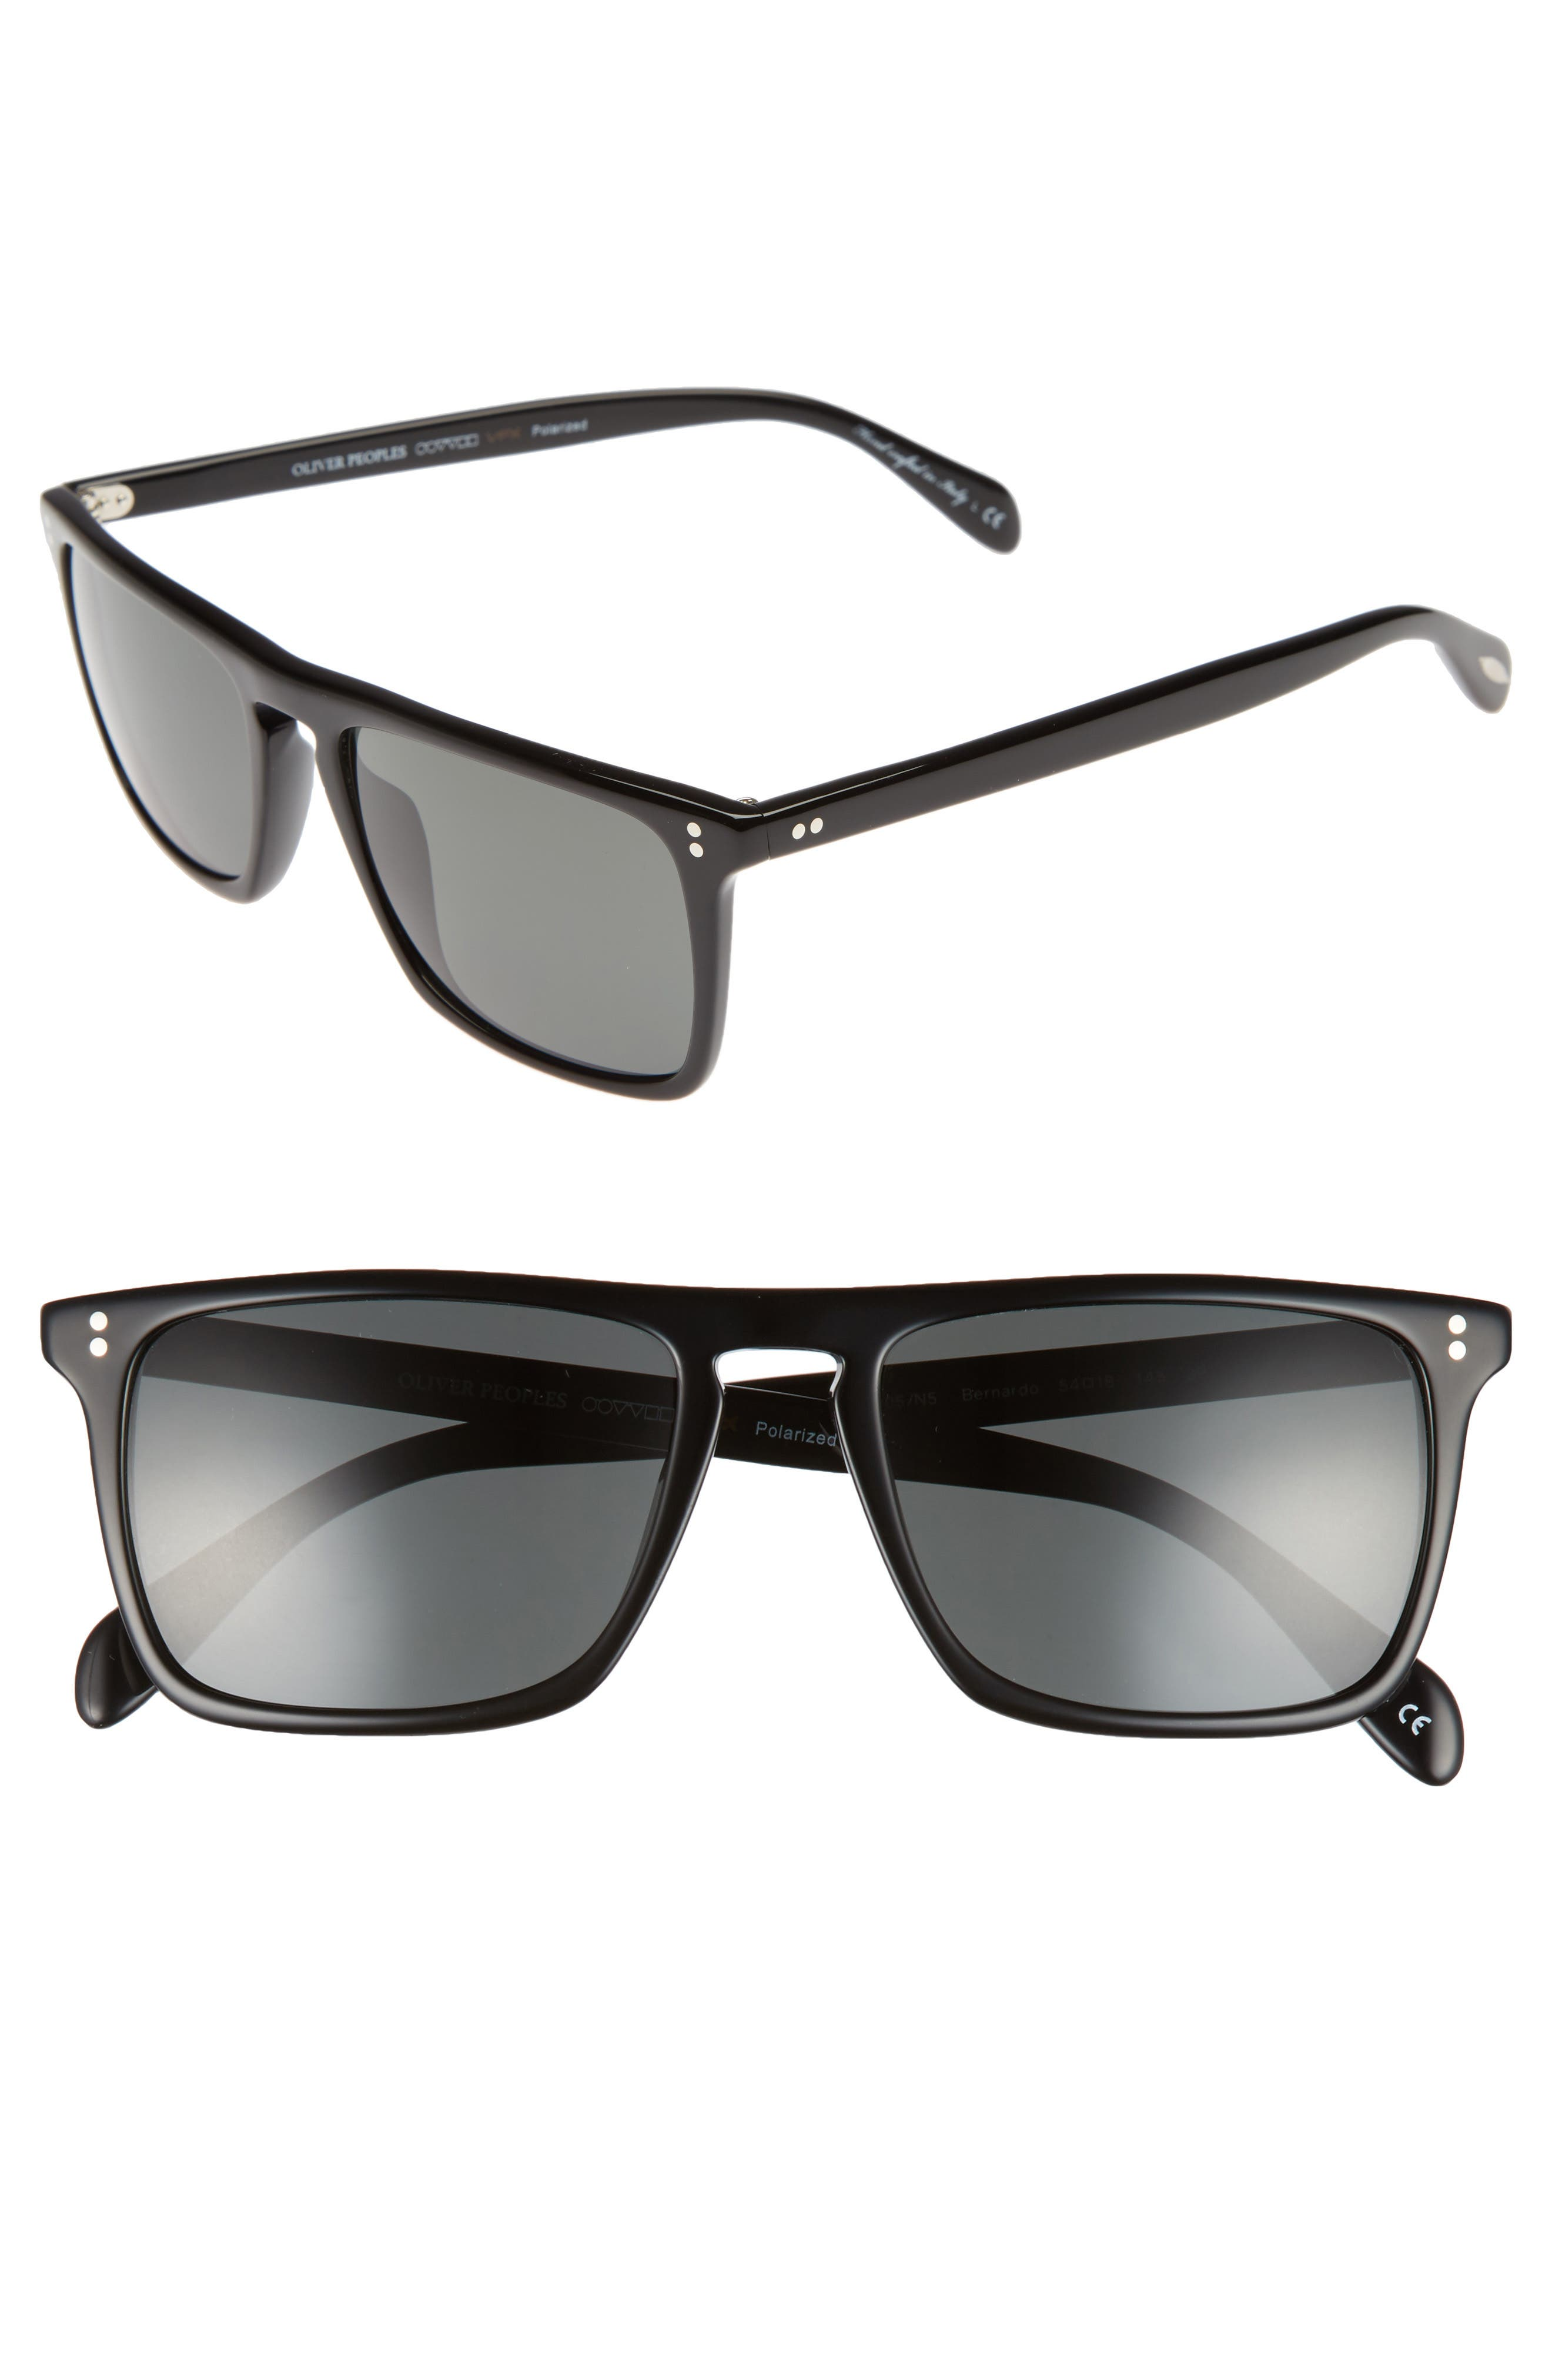 Bernardo 54mm Polarized Sunglasses,                             Main thumbnail 1, color,                             001